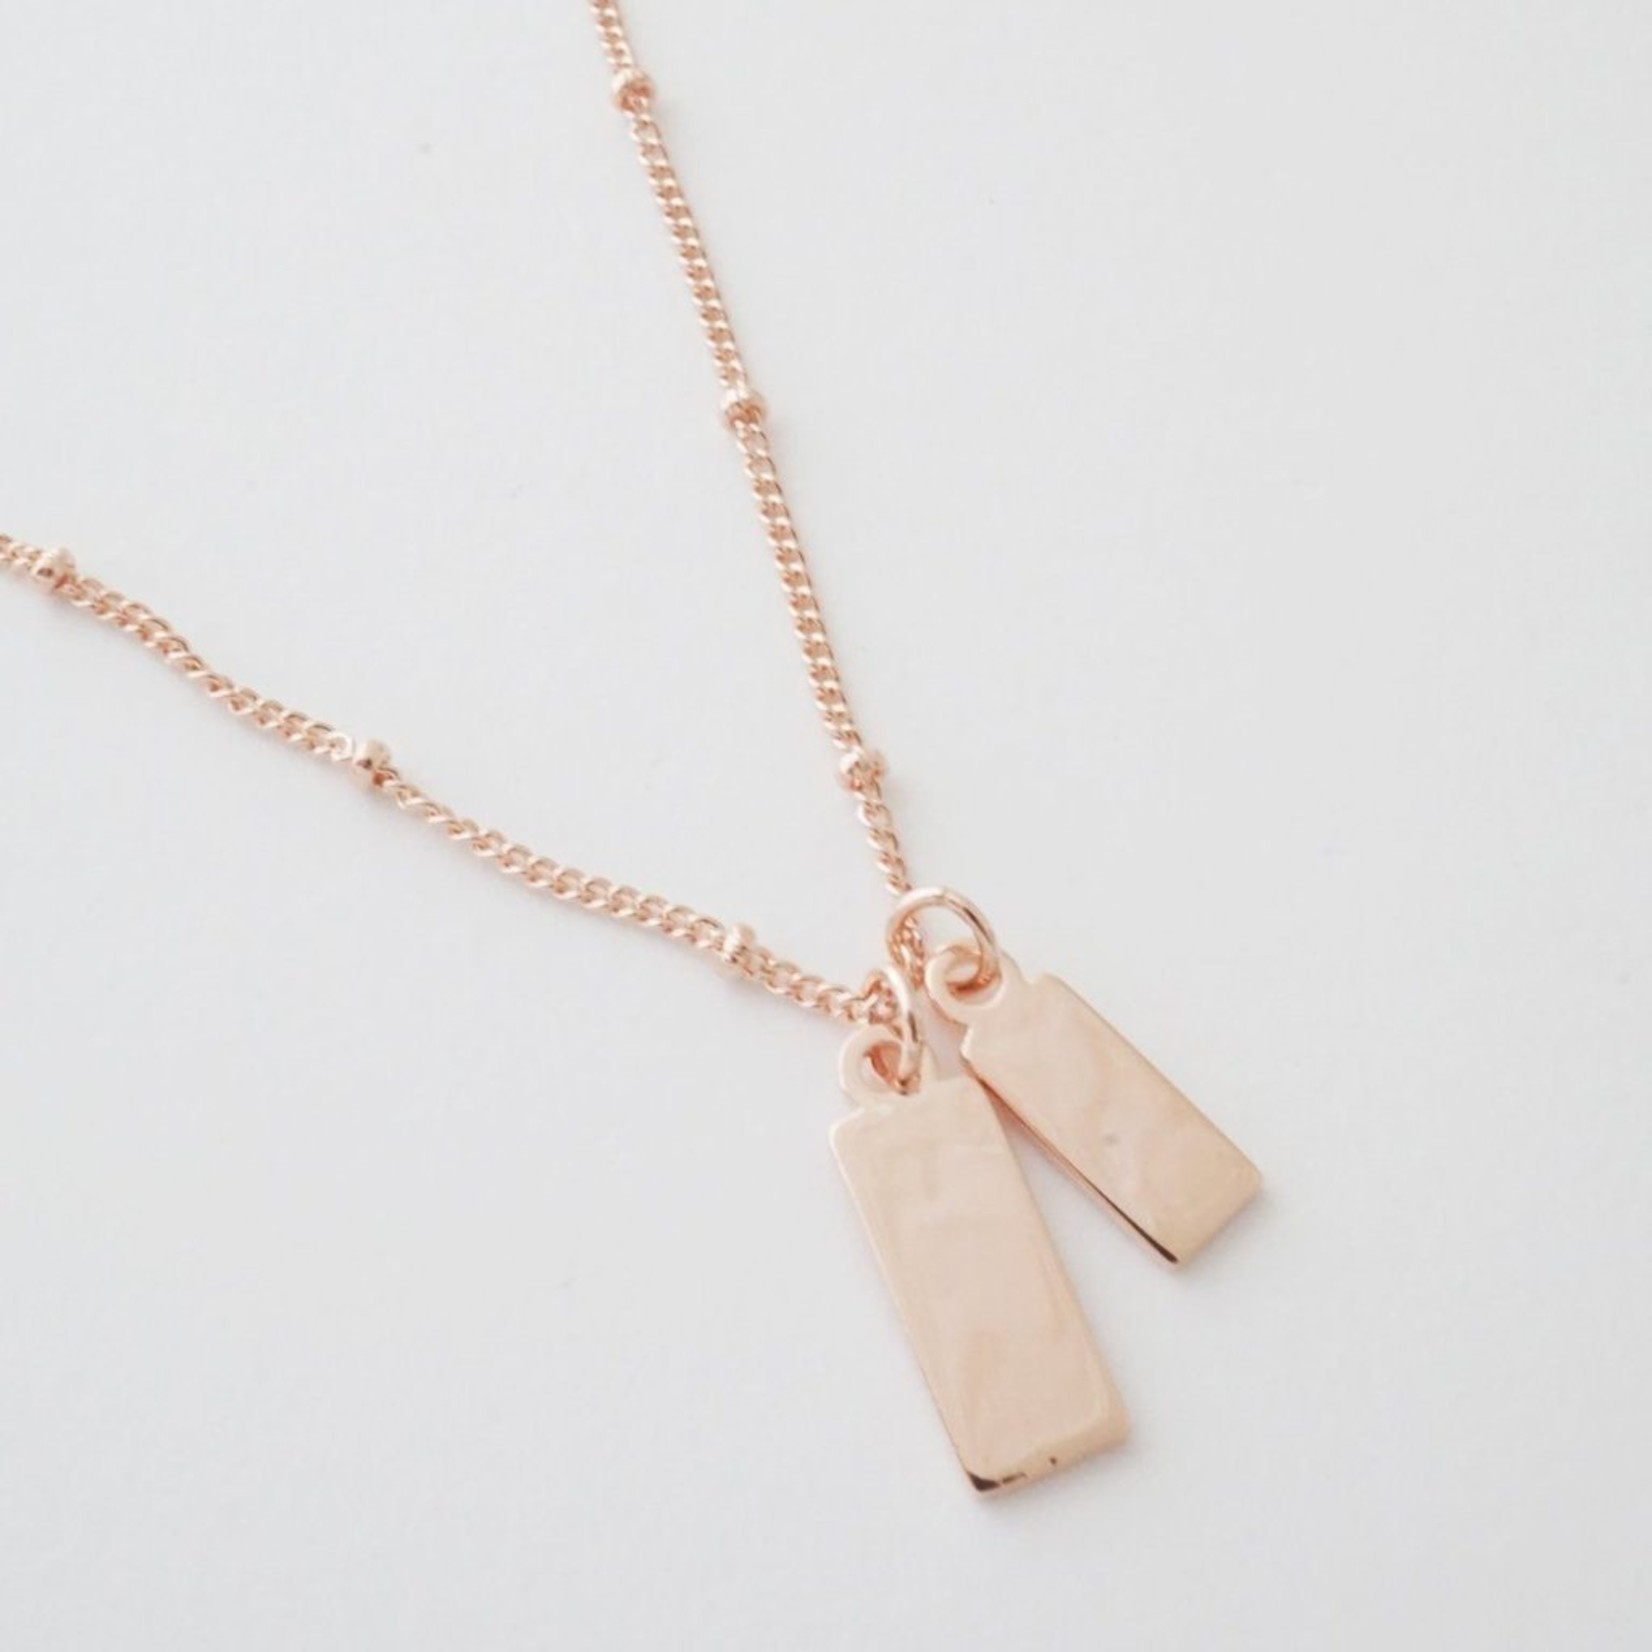 Honeycat Jewelry Tag Together Necklace by Honeycat Jewelry